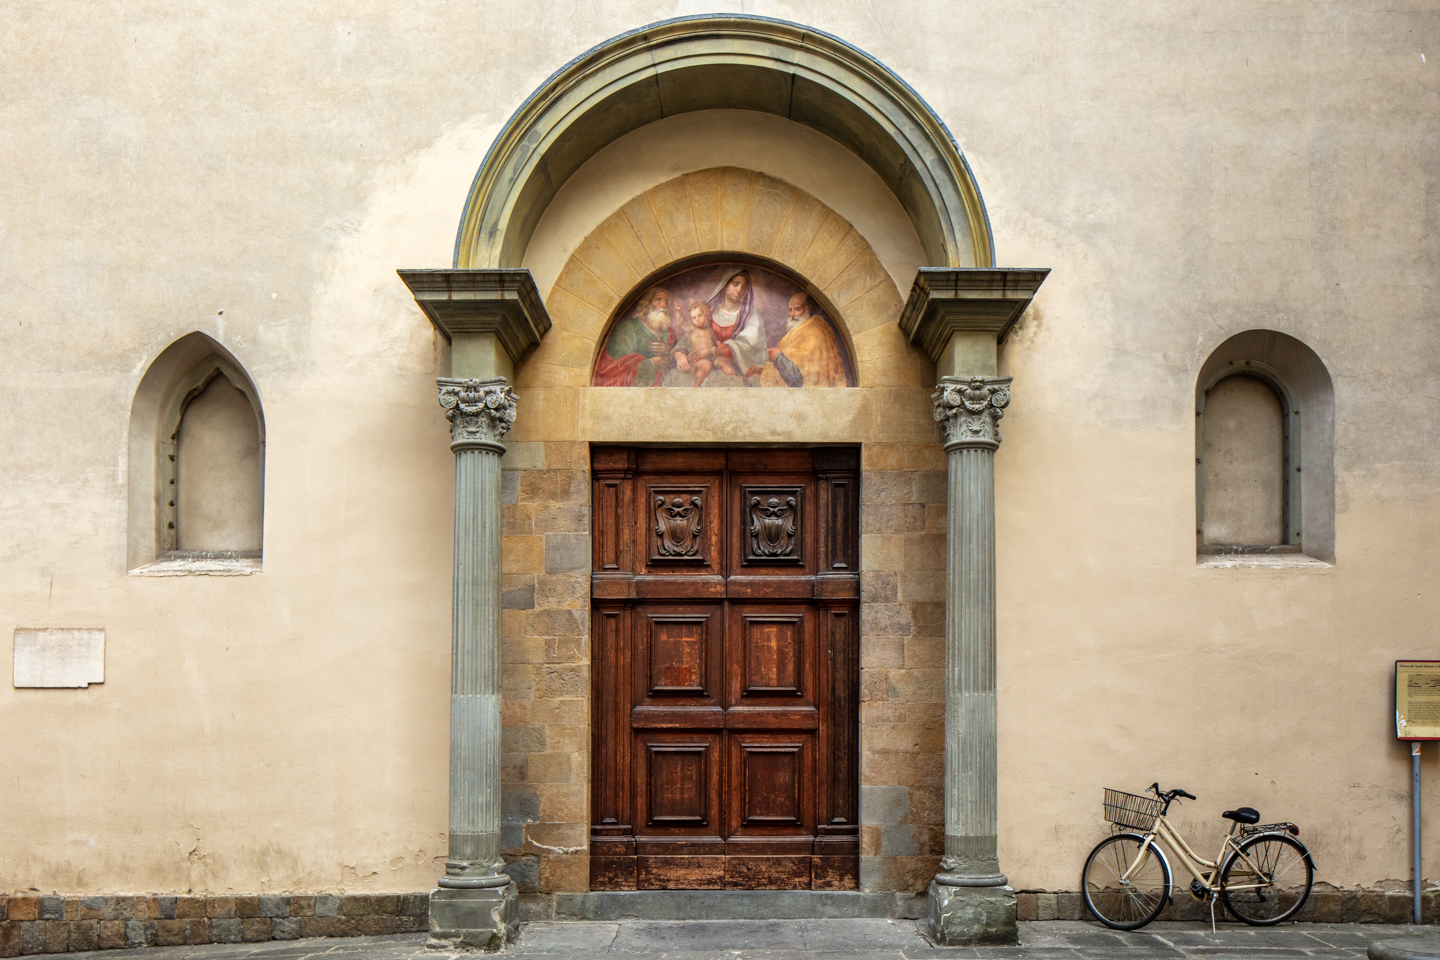 Color Photograph, Travel, Tuscany, Chiesa dei Santi Simone e Giuda, Florence, Italy, August 2, 2018